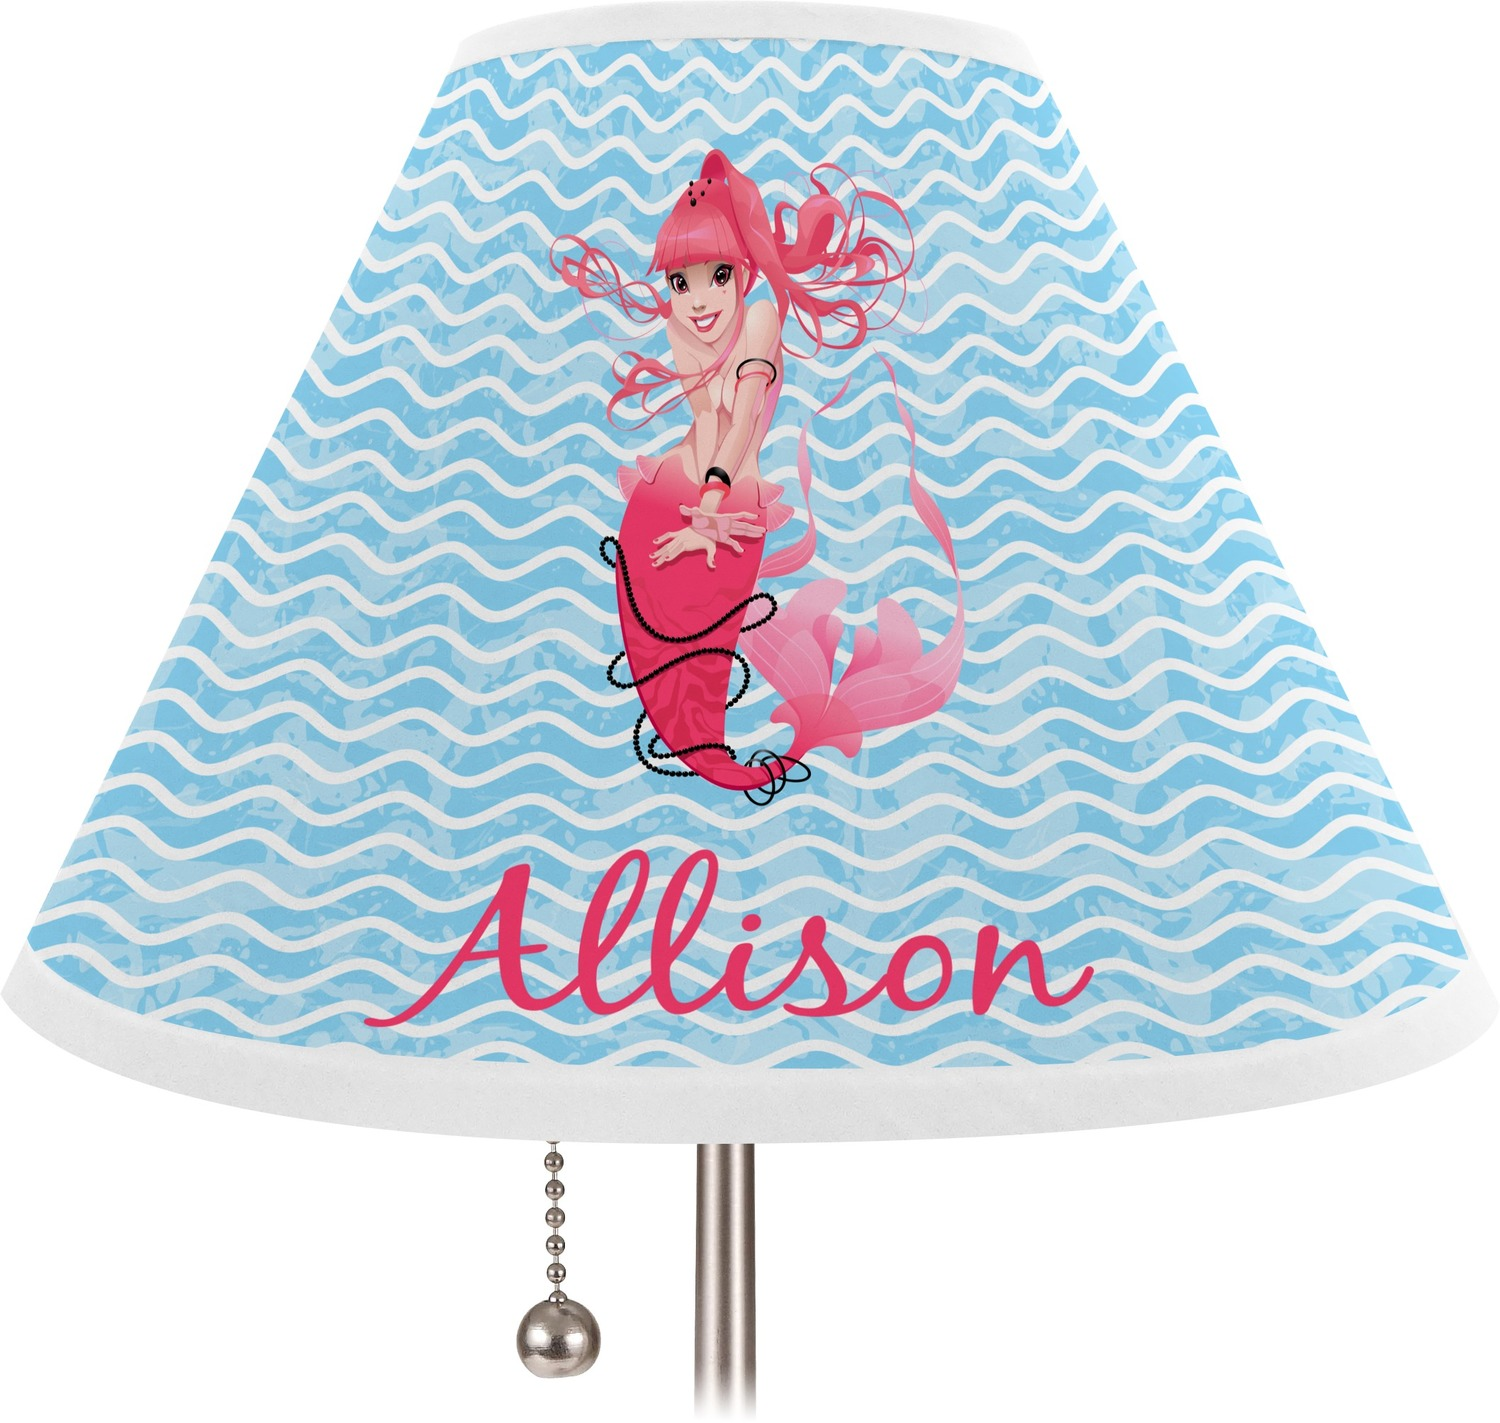 mermaid coolie lamp shade personalized you customize it. Black Bedroom Furniture Sets. Home Design Ideas